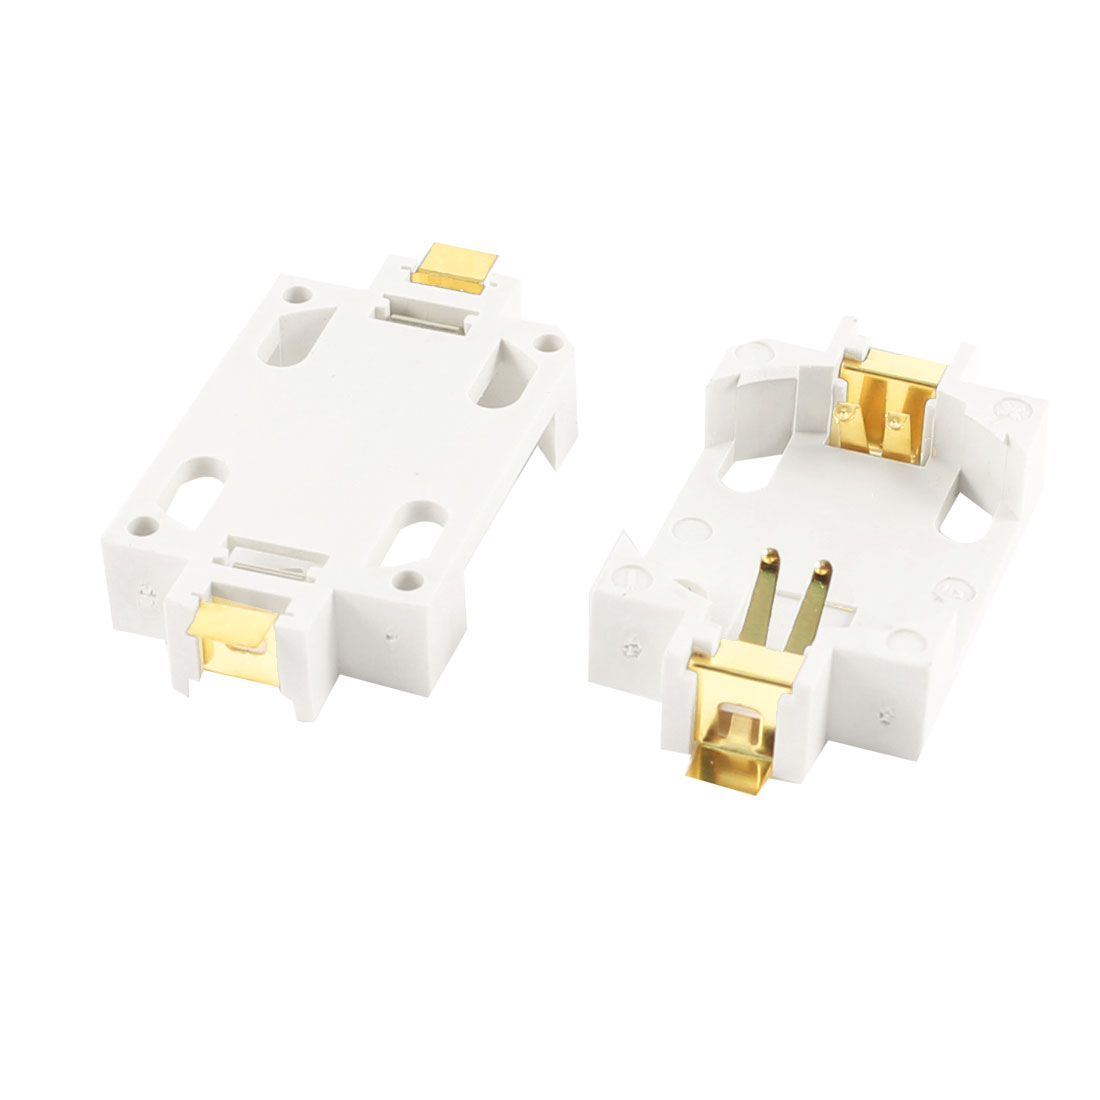 2 Pcs CR2032 Cell Button Battery Socket Holder Case SMD SMT Gold Plated White